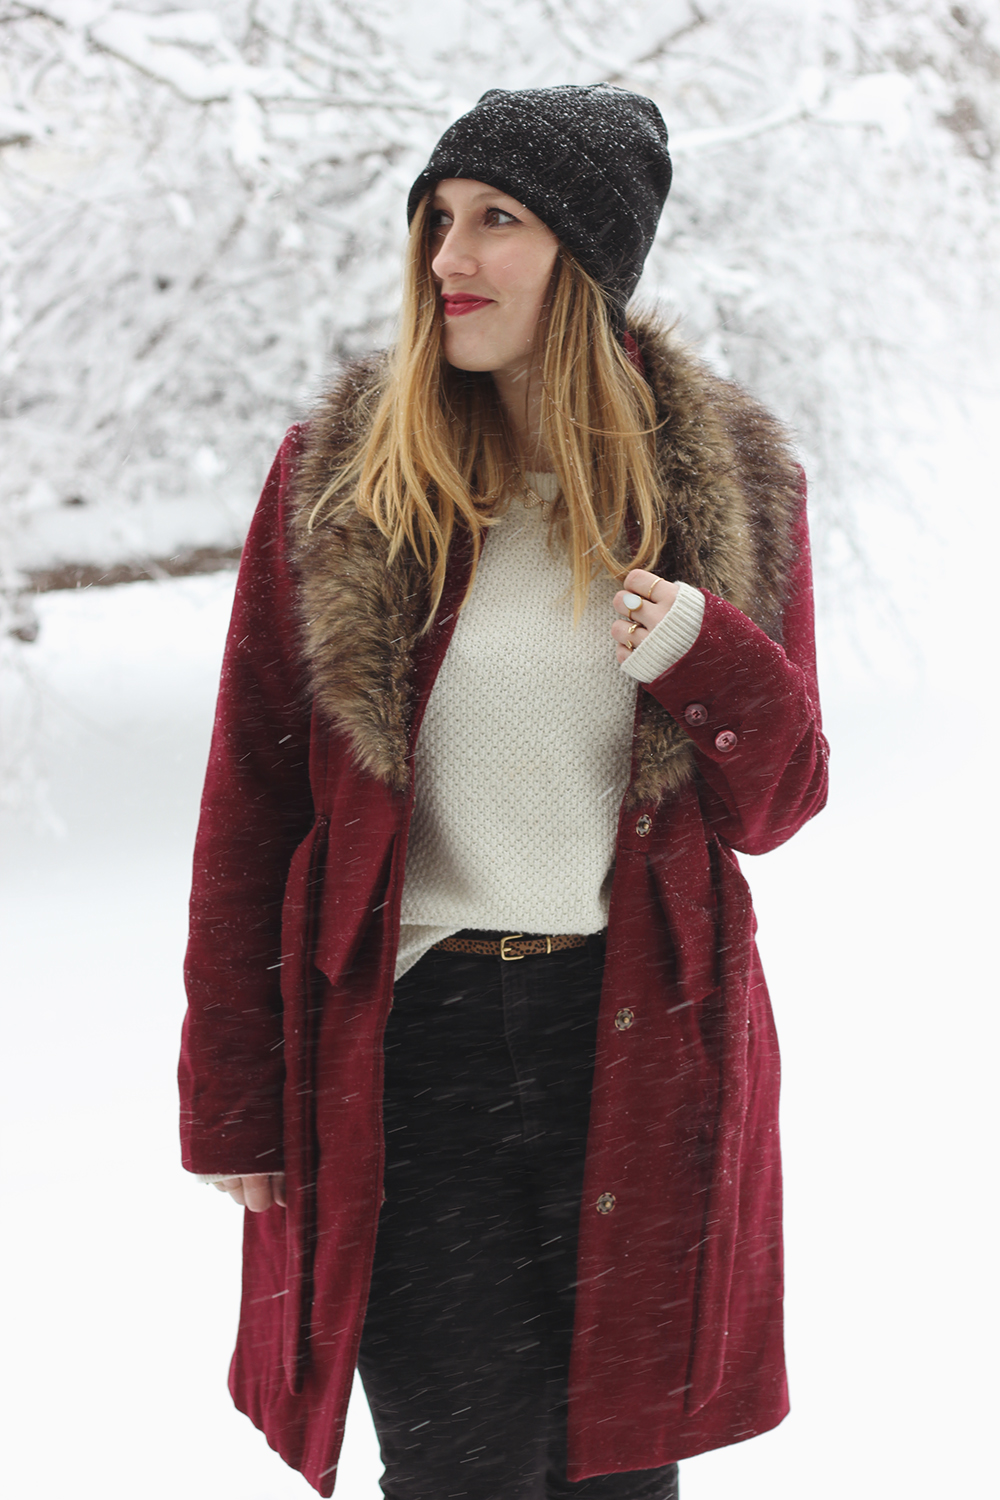 red-coat-fur-collar-snow-day-9